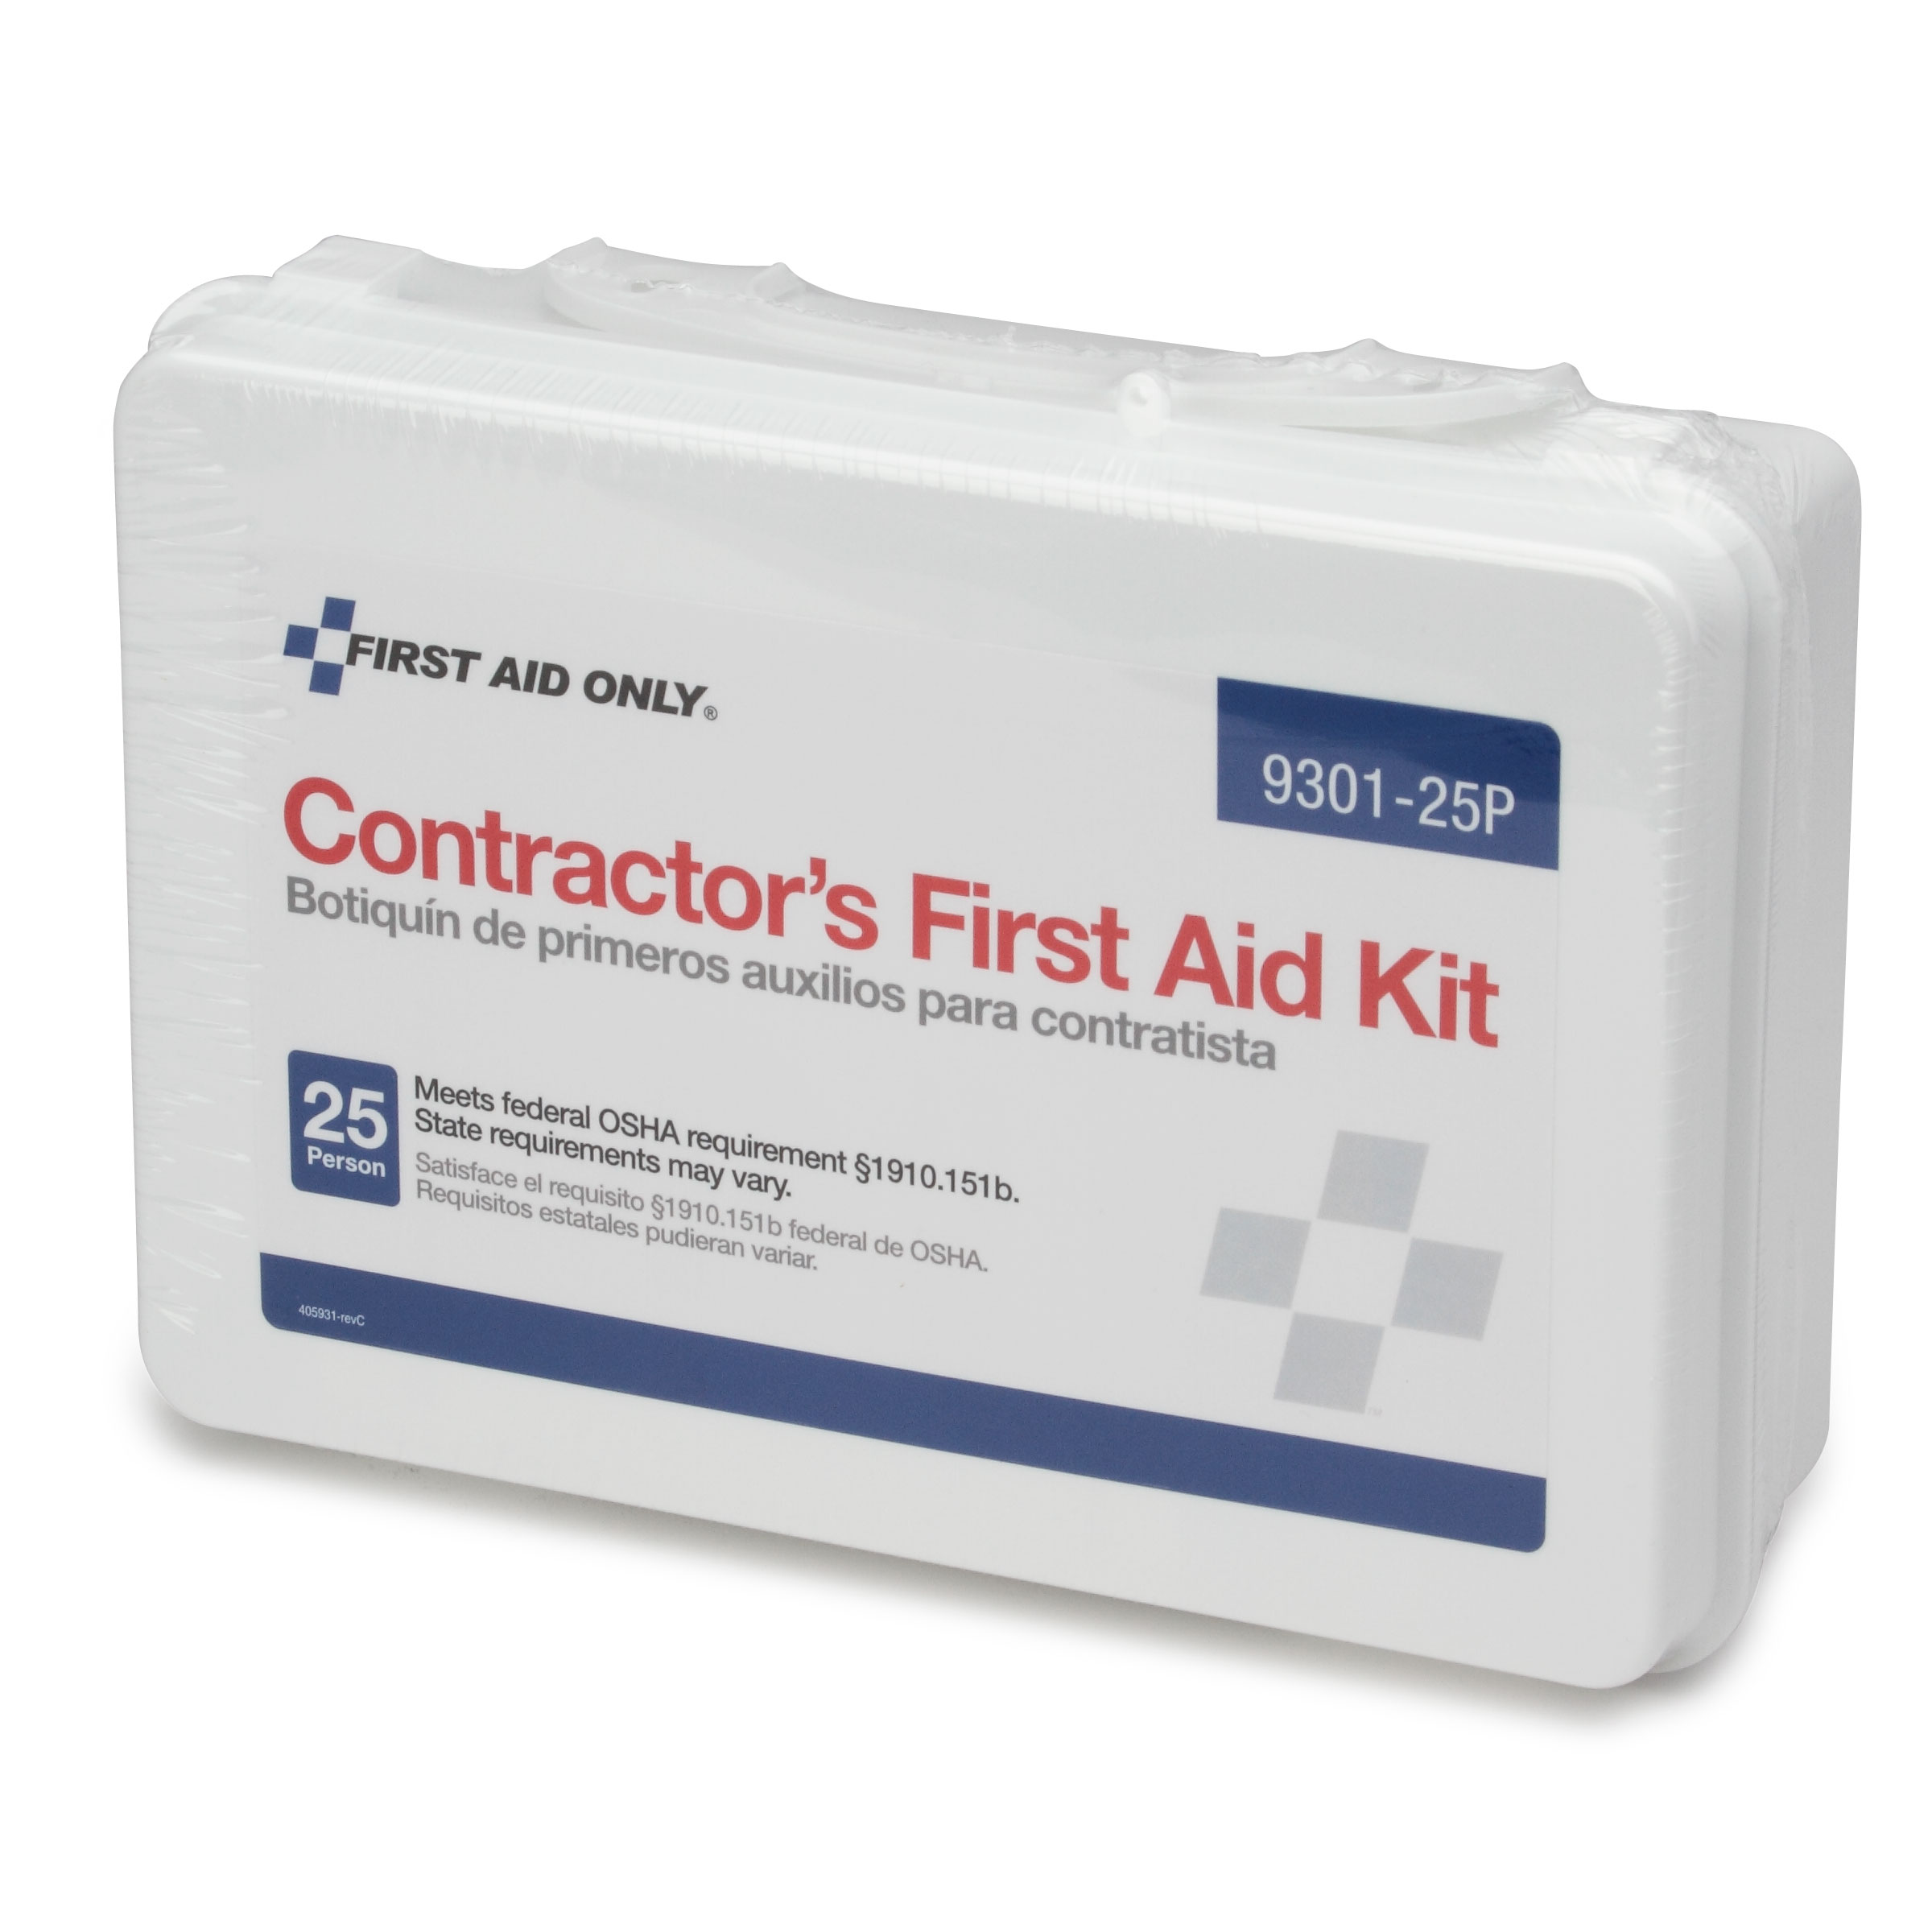 Royal Industries FAK 25 P first aid supplies